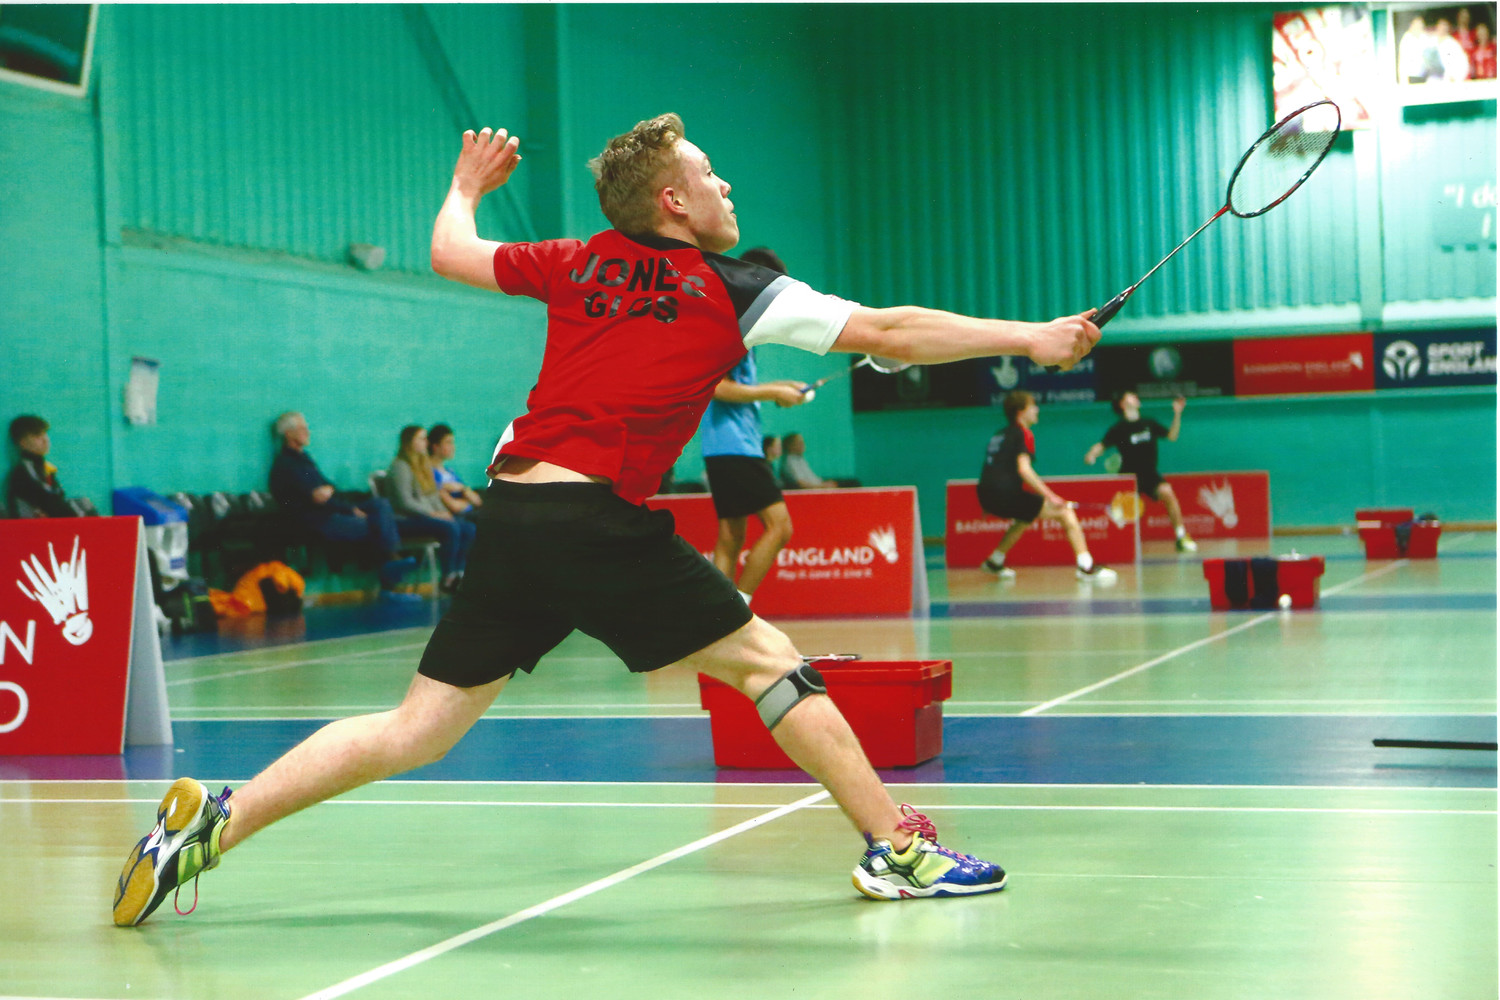 Henry_Badminton_Nationals_2016_LOWW.jpg (1500×1000)